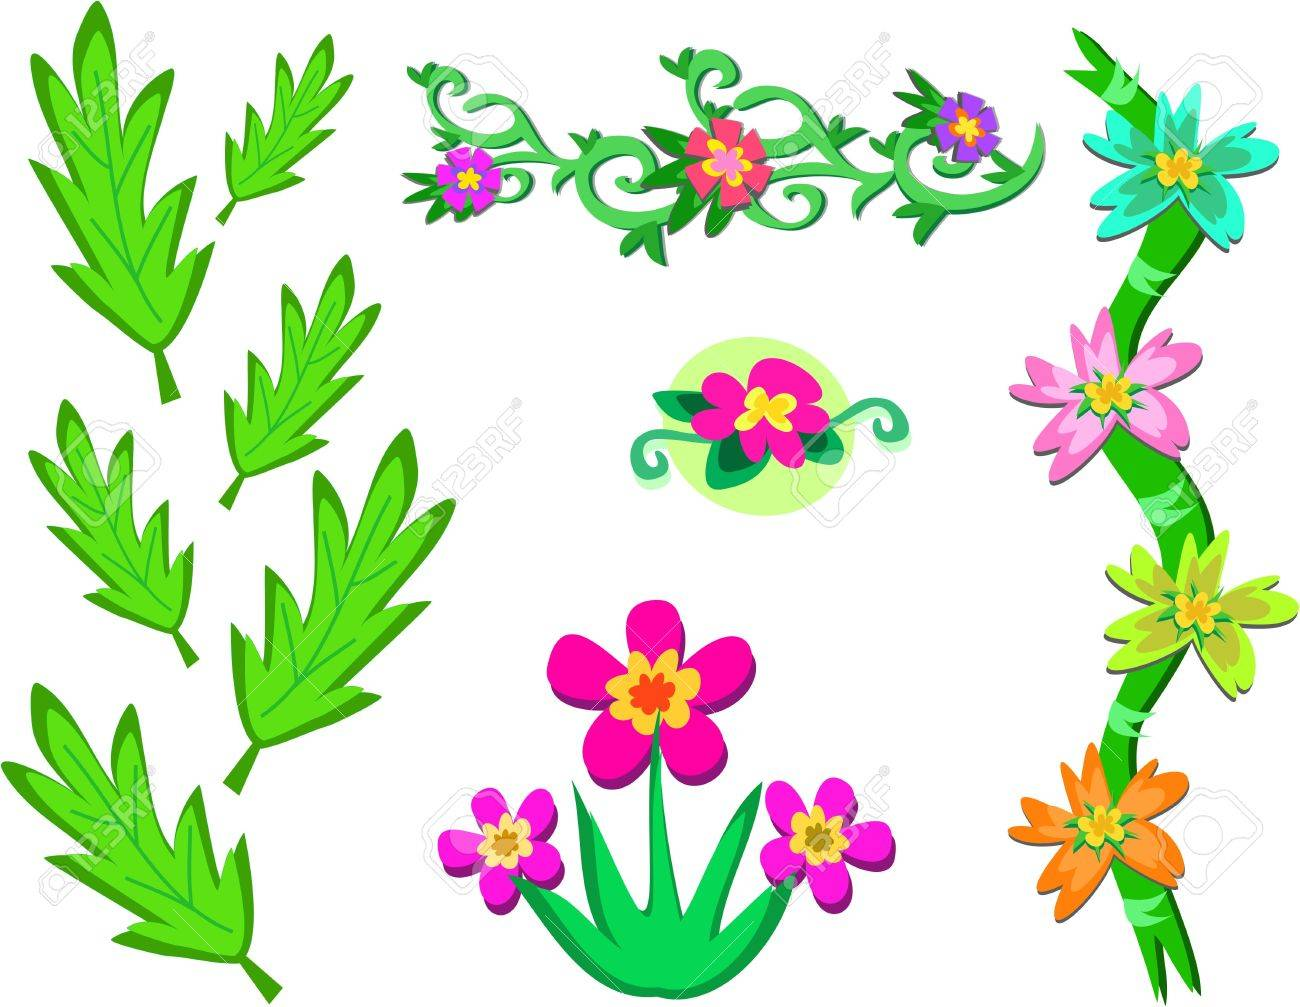 Mix of Flowers, Vines, and Leaves